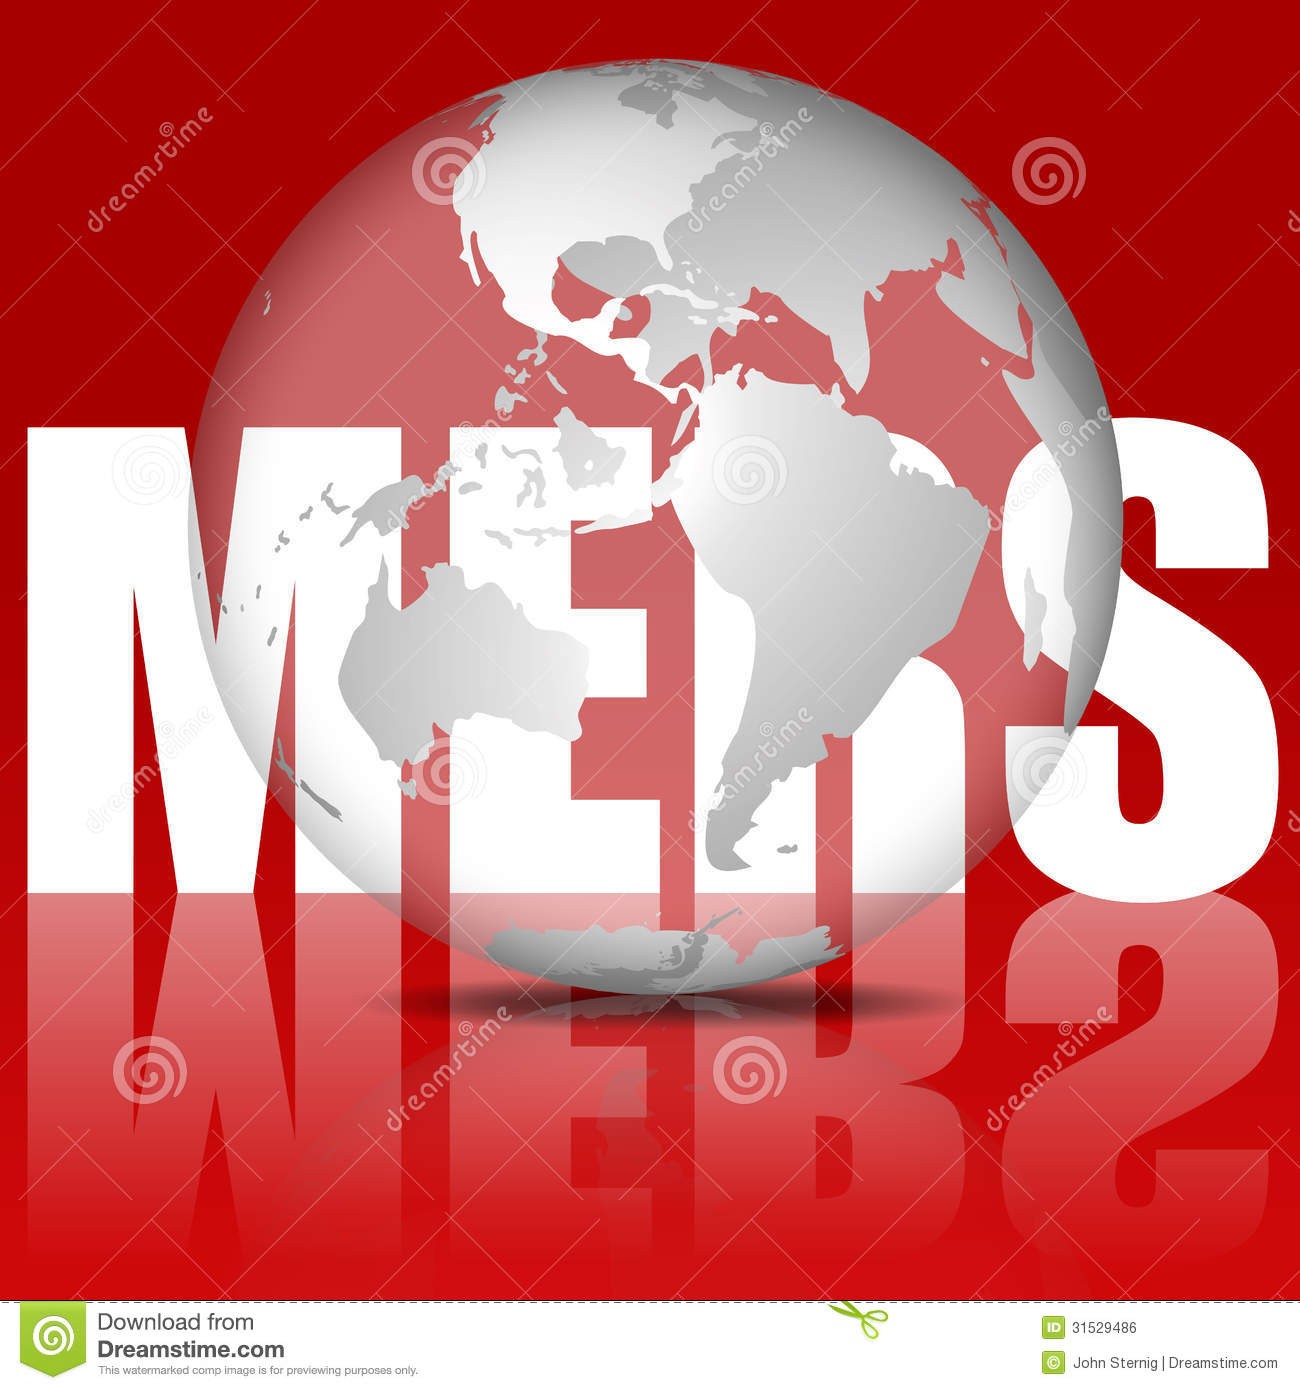 BUSTED!!! South Korea MERS EMERGED Out Of the PENTAGON's BIOWARFARE Labs Mers-virus-illustration-globe-middle-east-respiratory-syndrome-coronavirus-31529486